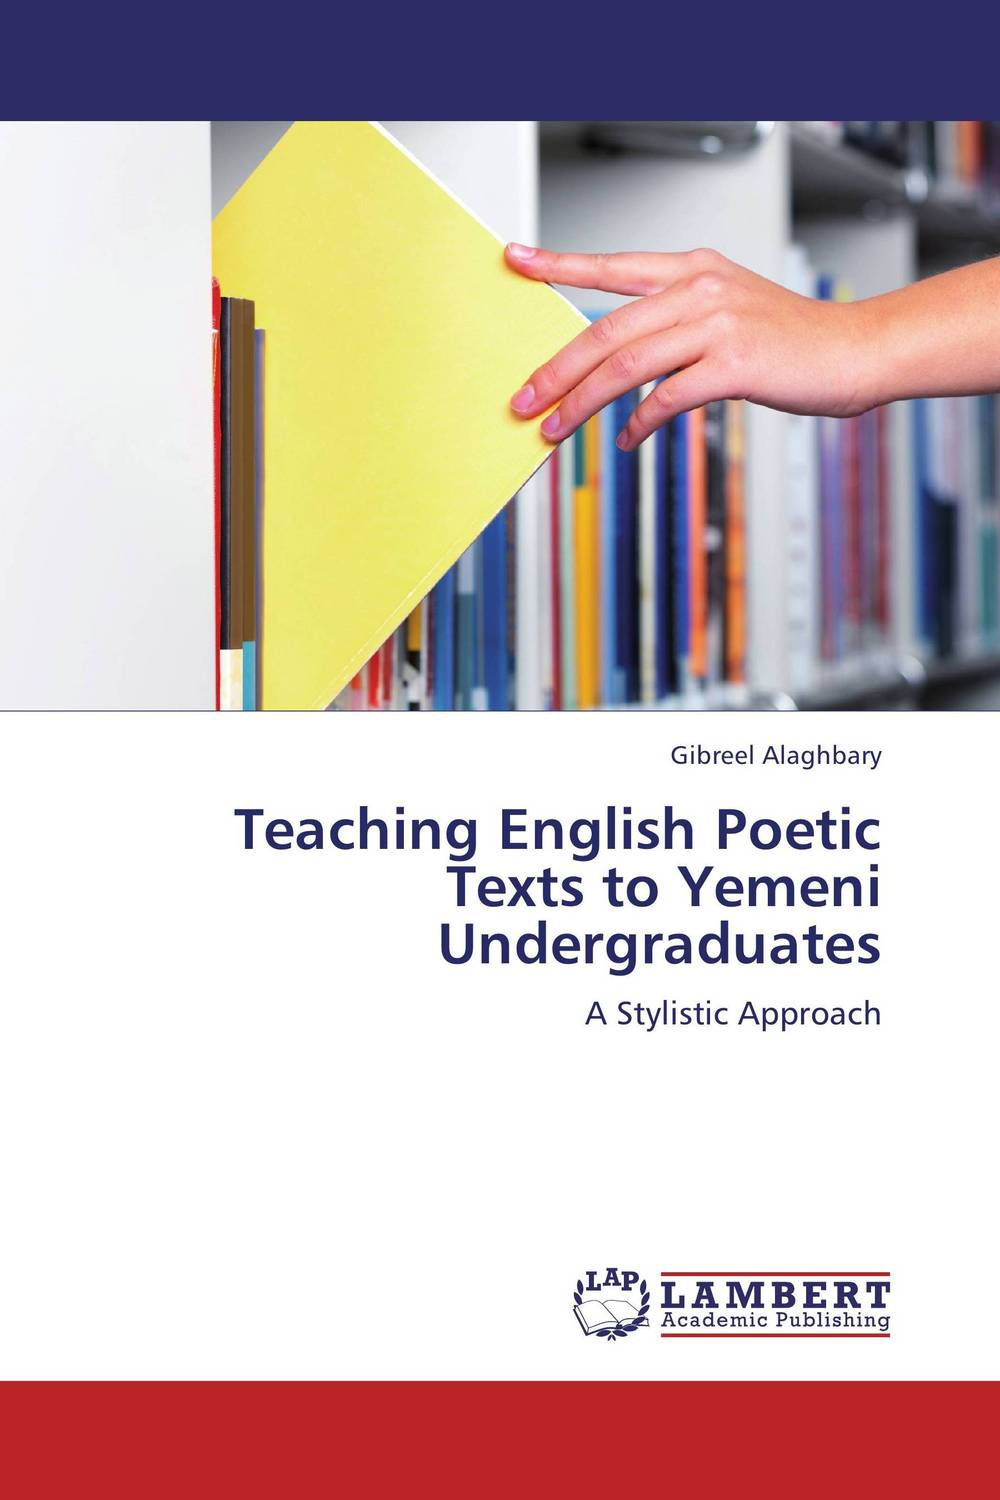 Teaching English Poetic Texts to Yemeni Undergraduates the stylistic identity of english literary texts